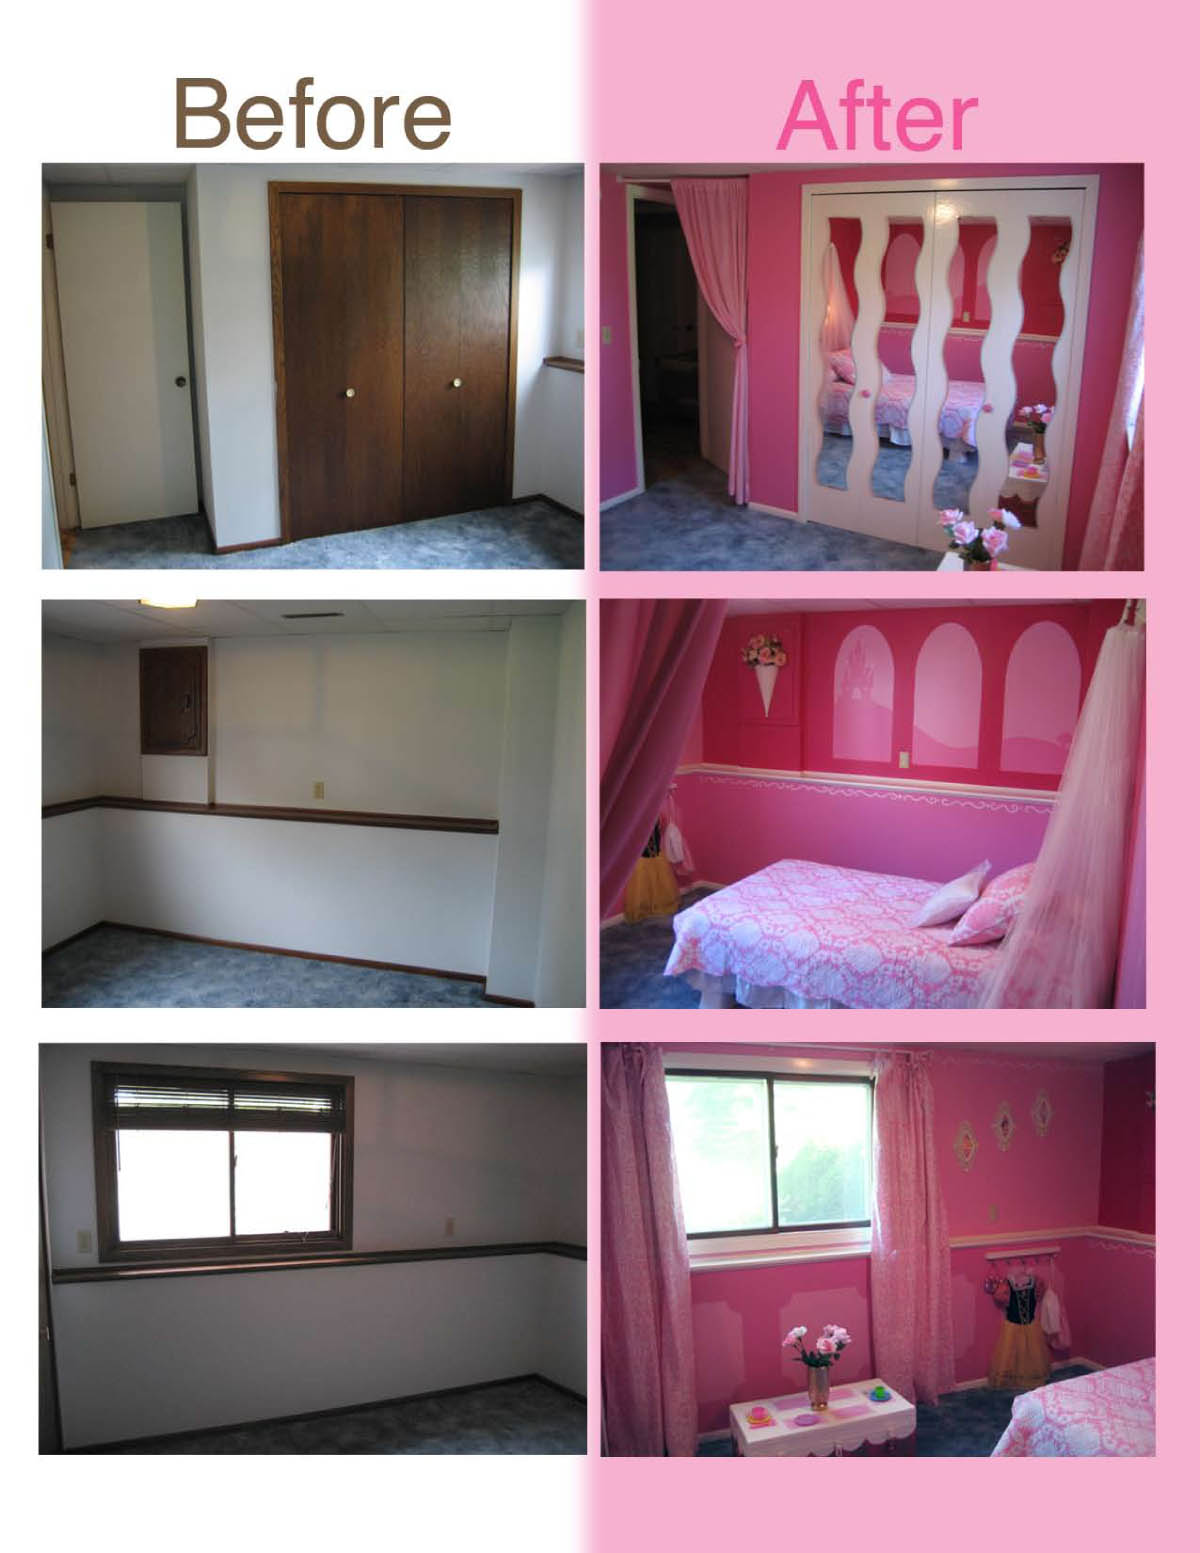 Id Mommy Diy Princess Themed Bedroom By Heidi Panelli